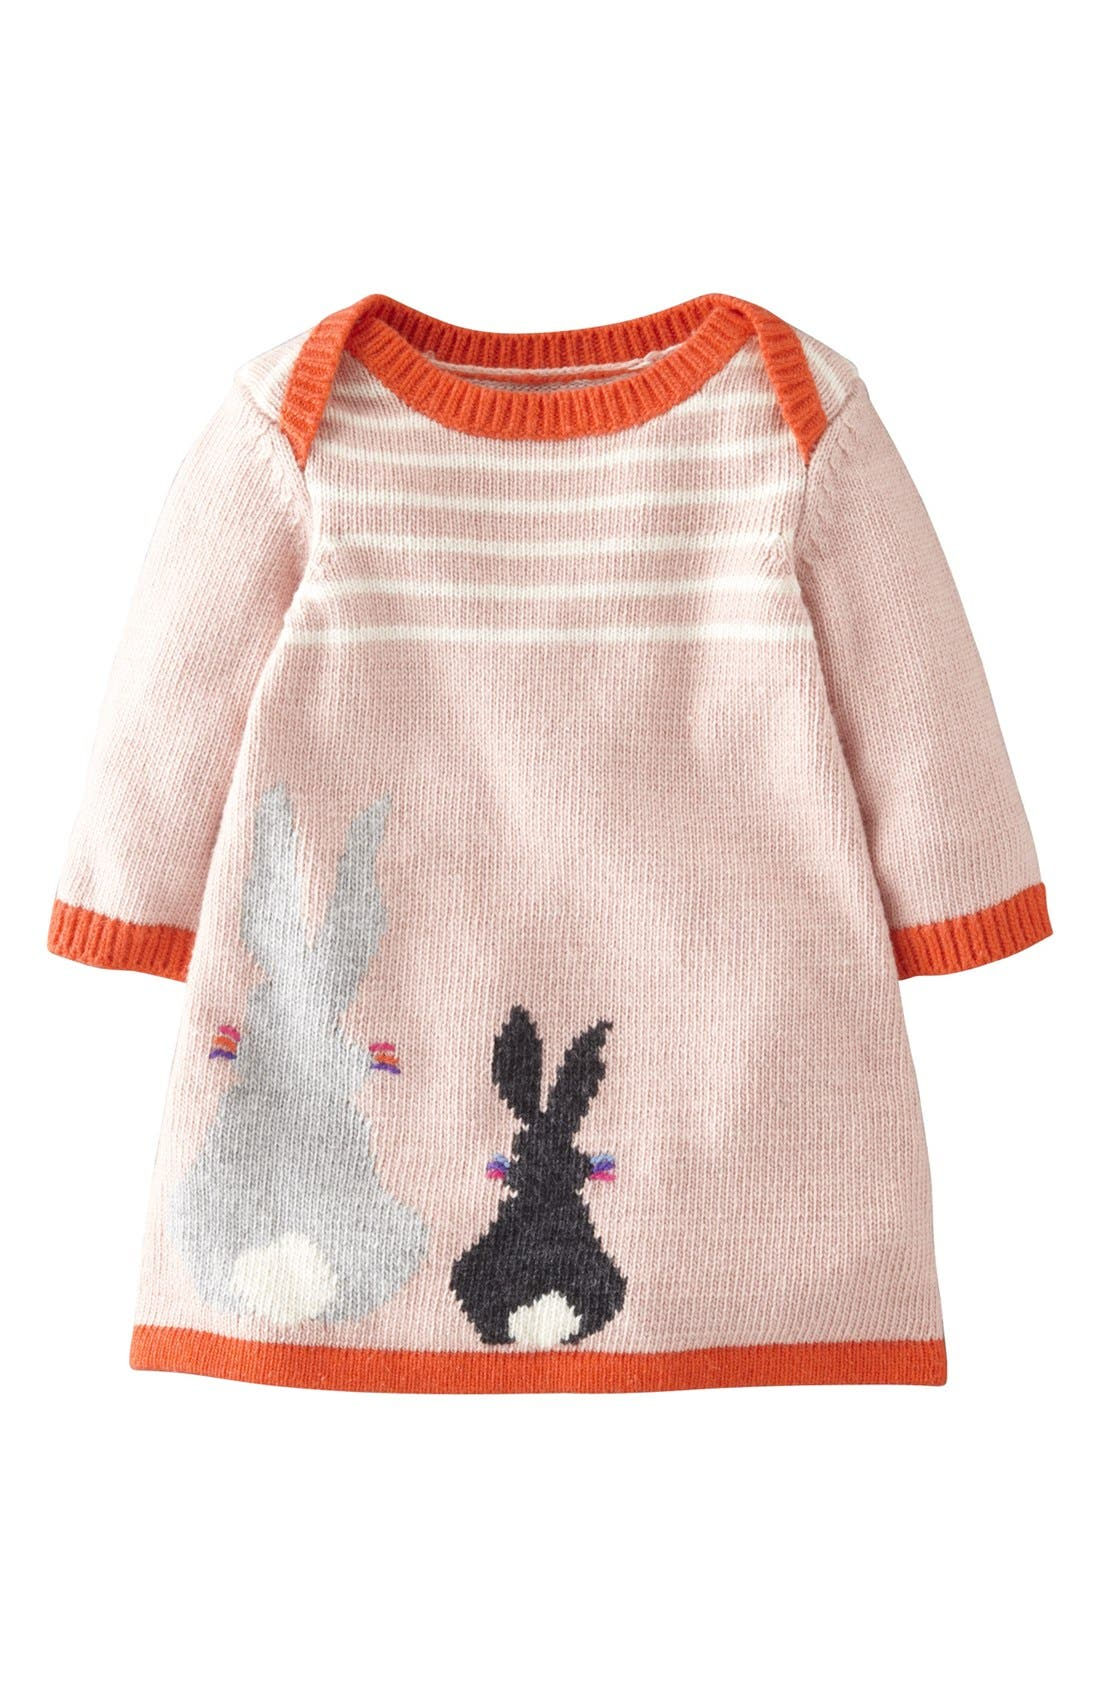 Main Image - Mini Boden 'My Baby' Intarsia Sweater Dress (Baby Girls)